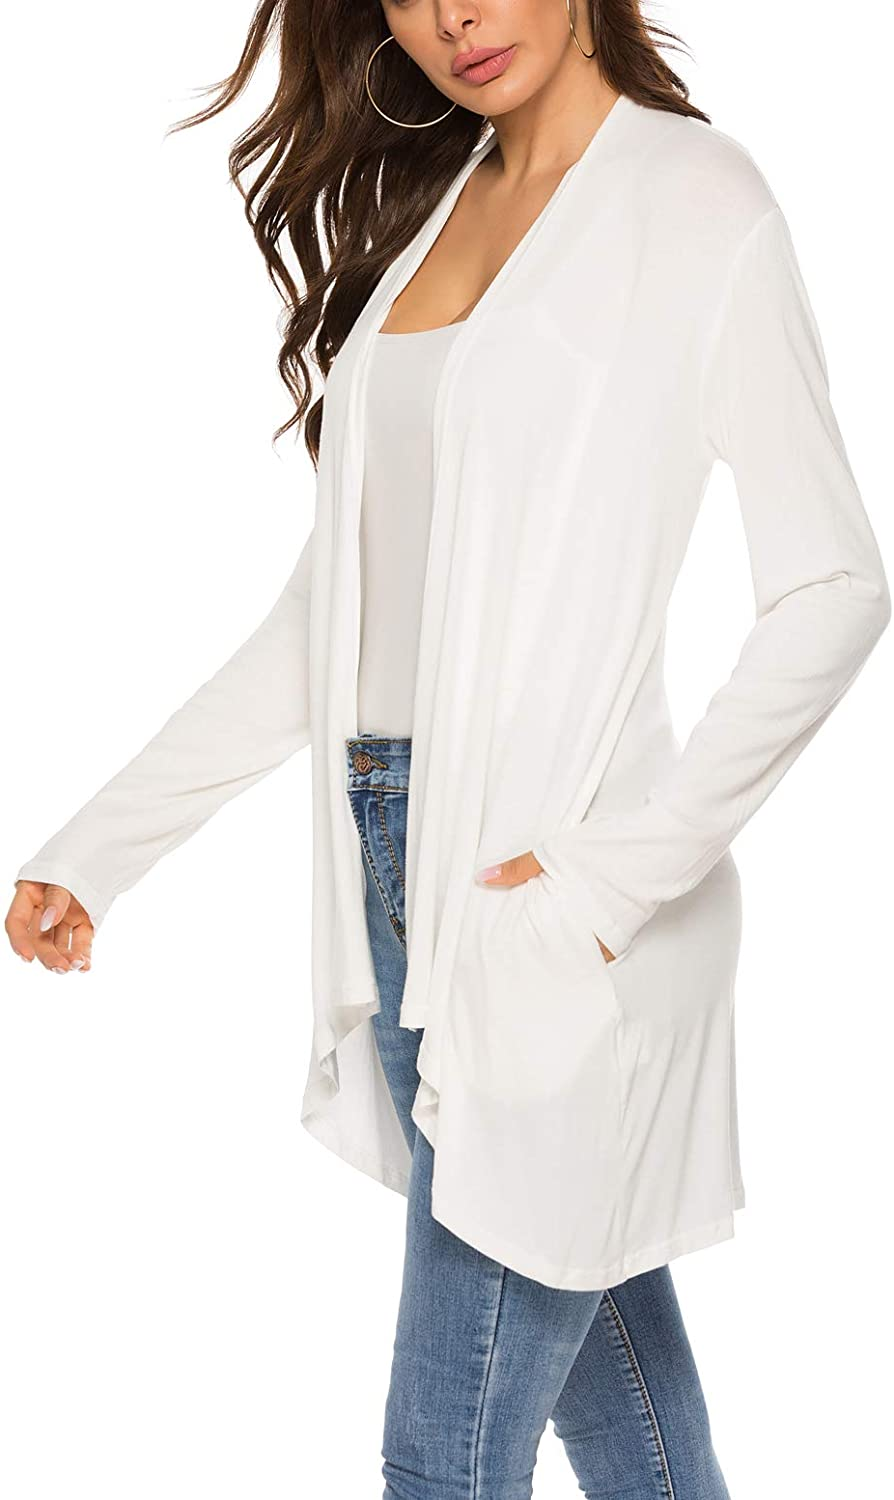 Women's Casual Long Sleeve Open Front Lightweight Drape Cardigans with Pockets